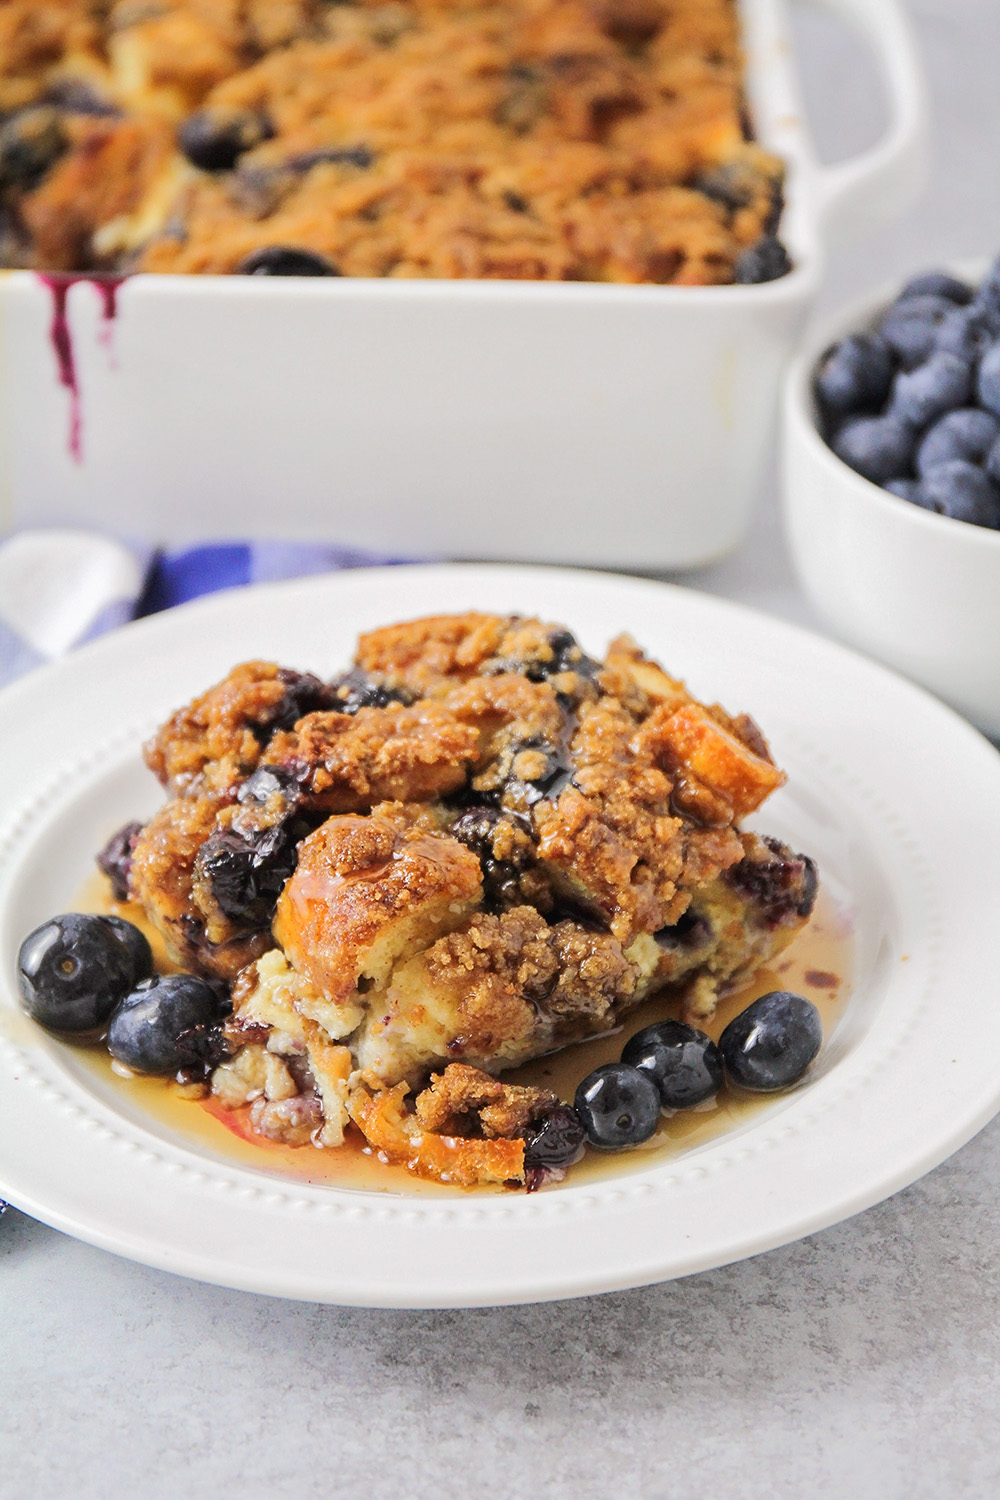 This blueberry streusel baked french toast is easy to make in advance, and totally delicious!